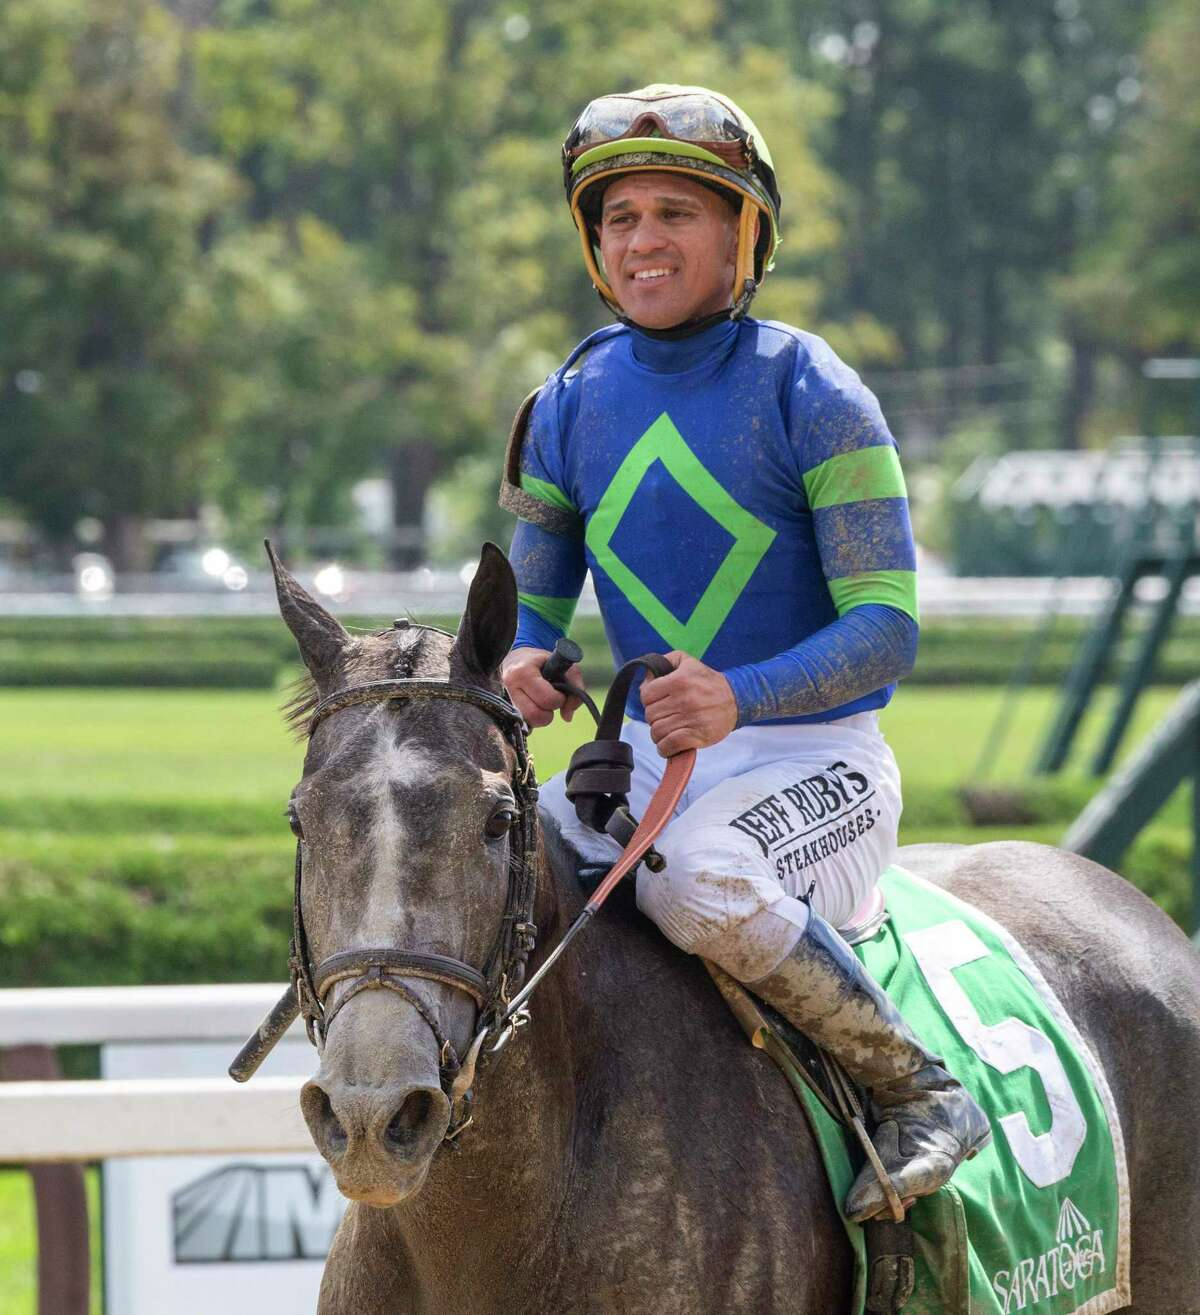 Royal Charlotte with jockey Javier Castellano return to the winner?•s circle after winning the 72nd running of The Prioress at the Saratoga Race Course Saturday August 31, 2019 in Saratoga Springs, N.Y. Photo Special to the Times Union by Skip Dickstein